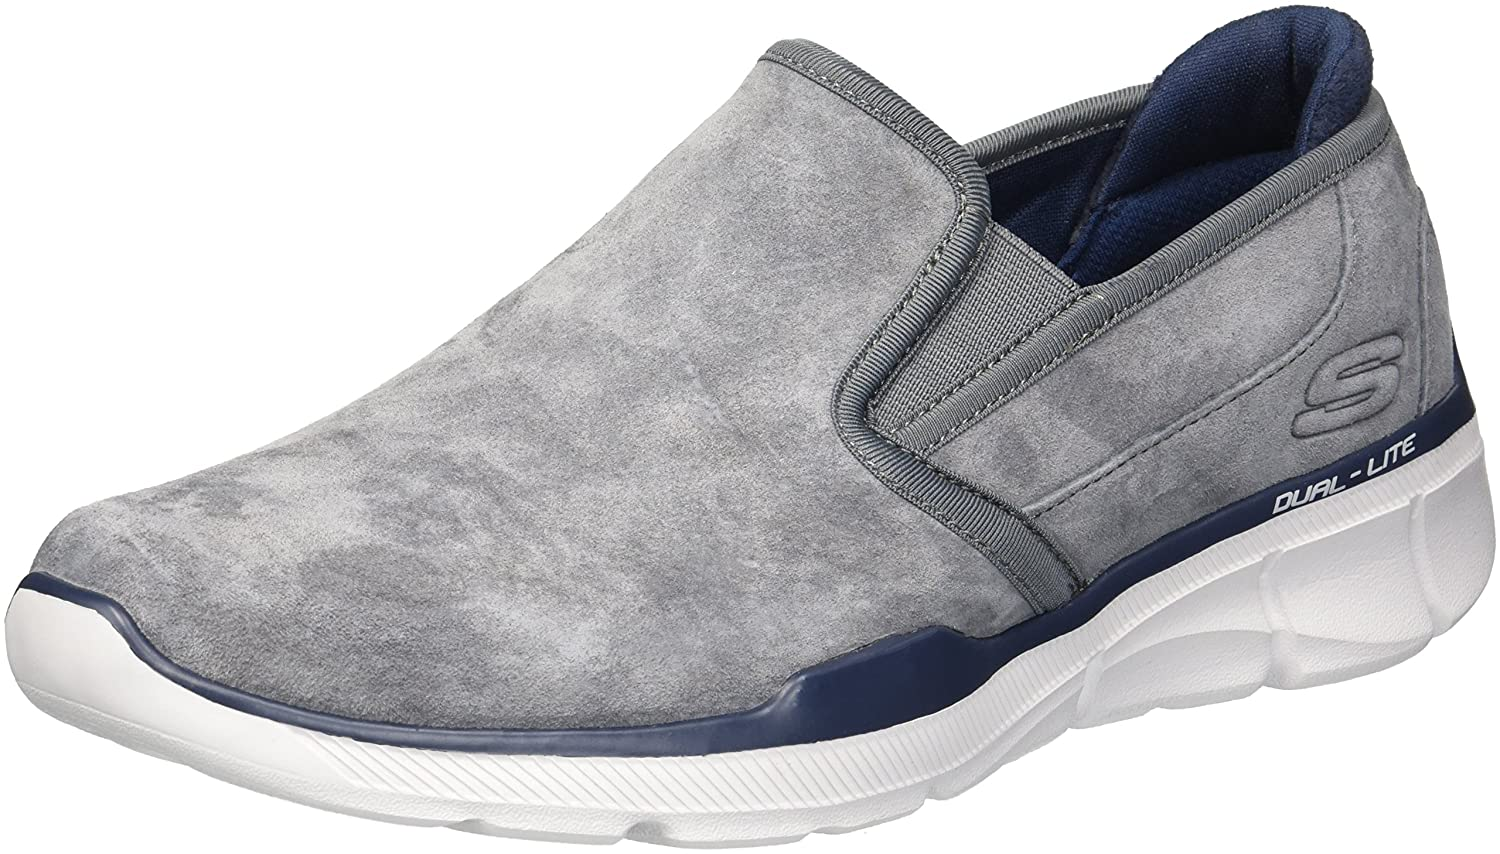 hommes's Trainers Skechers Equalizer 3.0 Substic hommes Charcoal